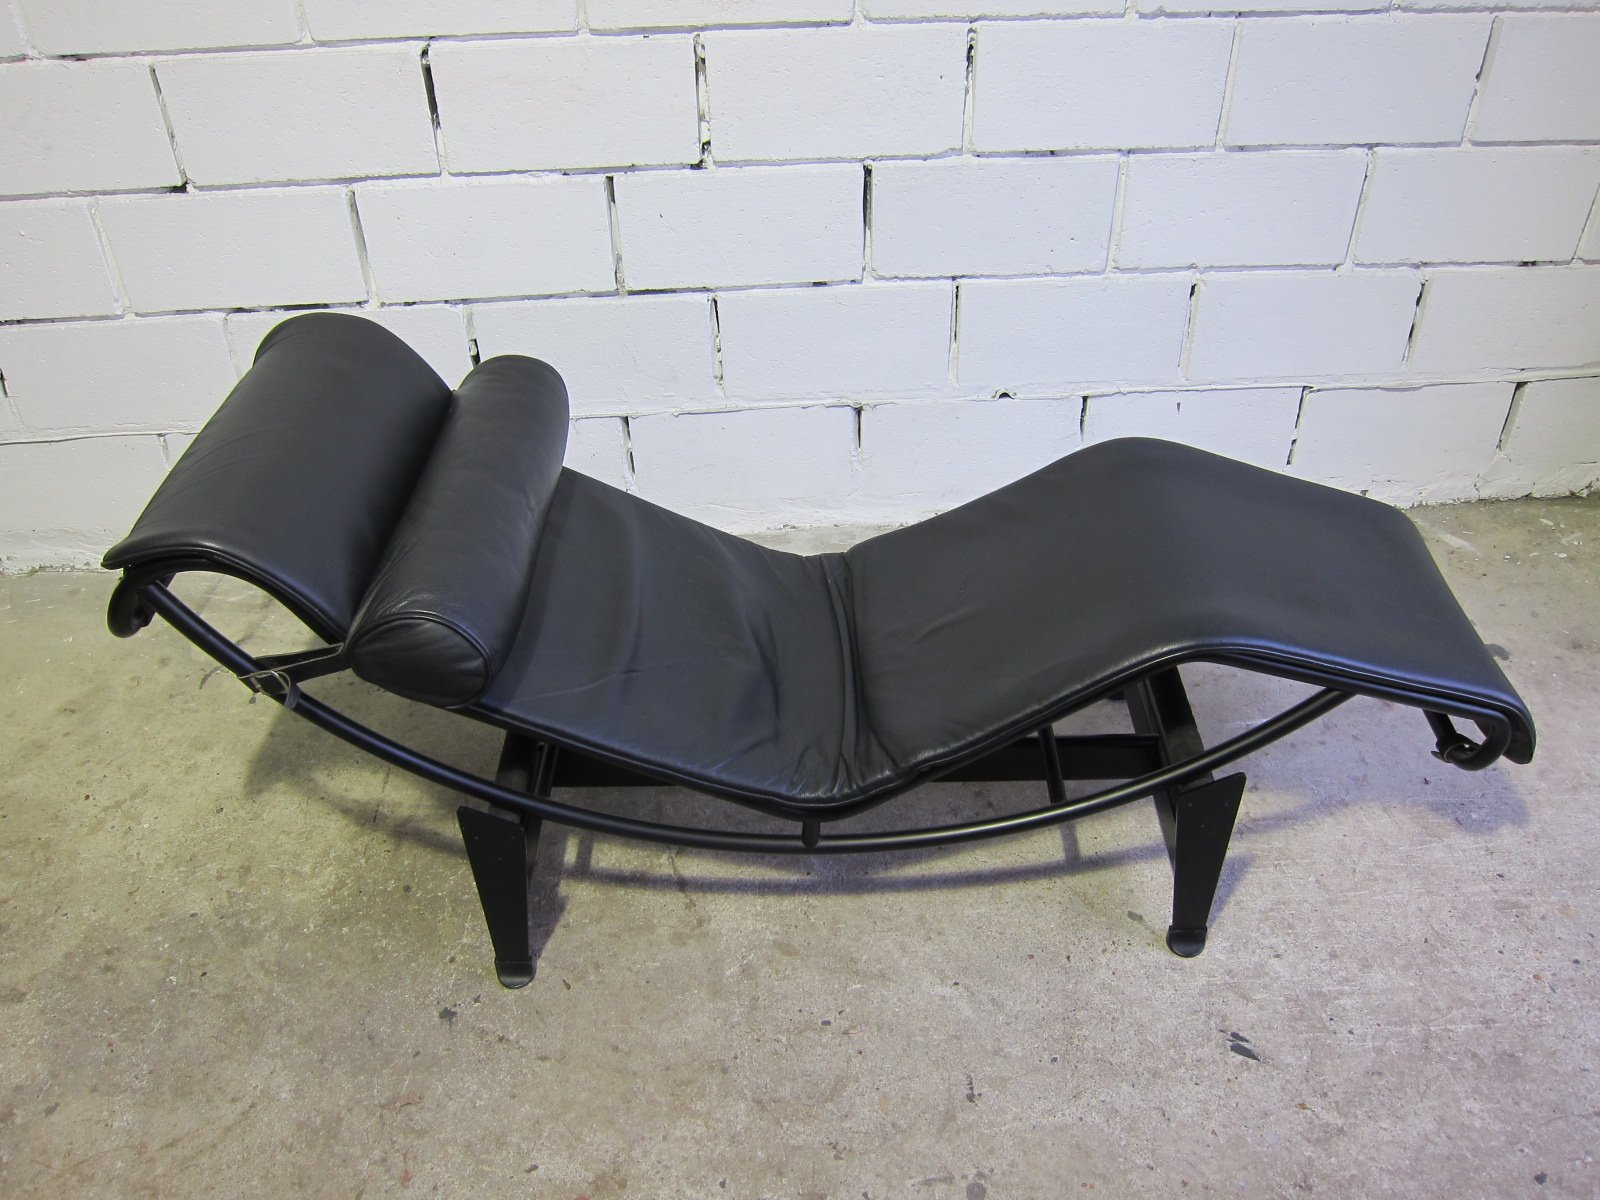 Vintage lc4 chaise lounge by le corbusier for cassina for Cassina chaise lounge